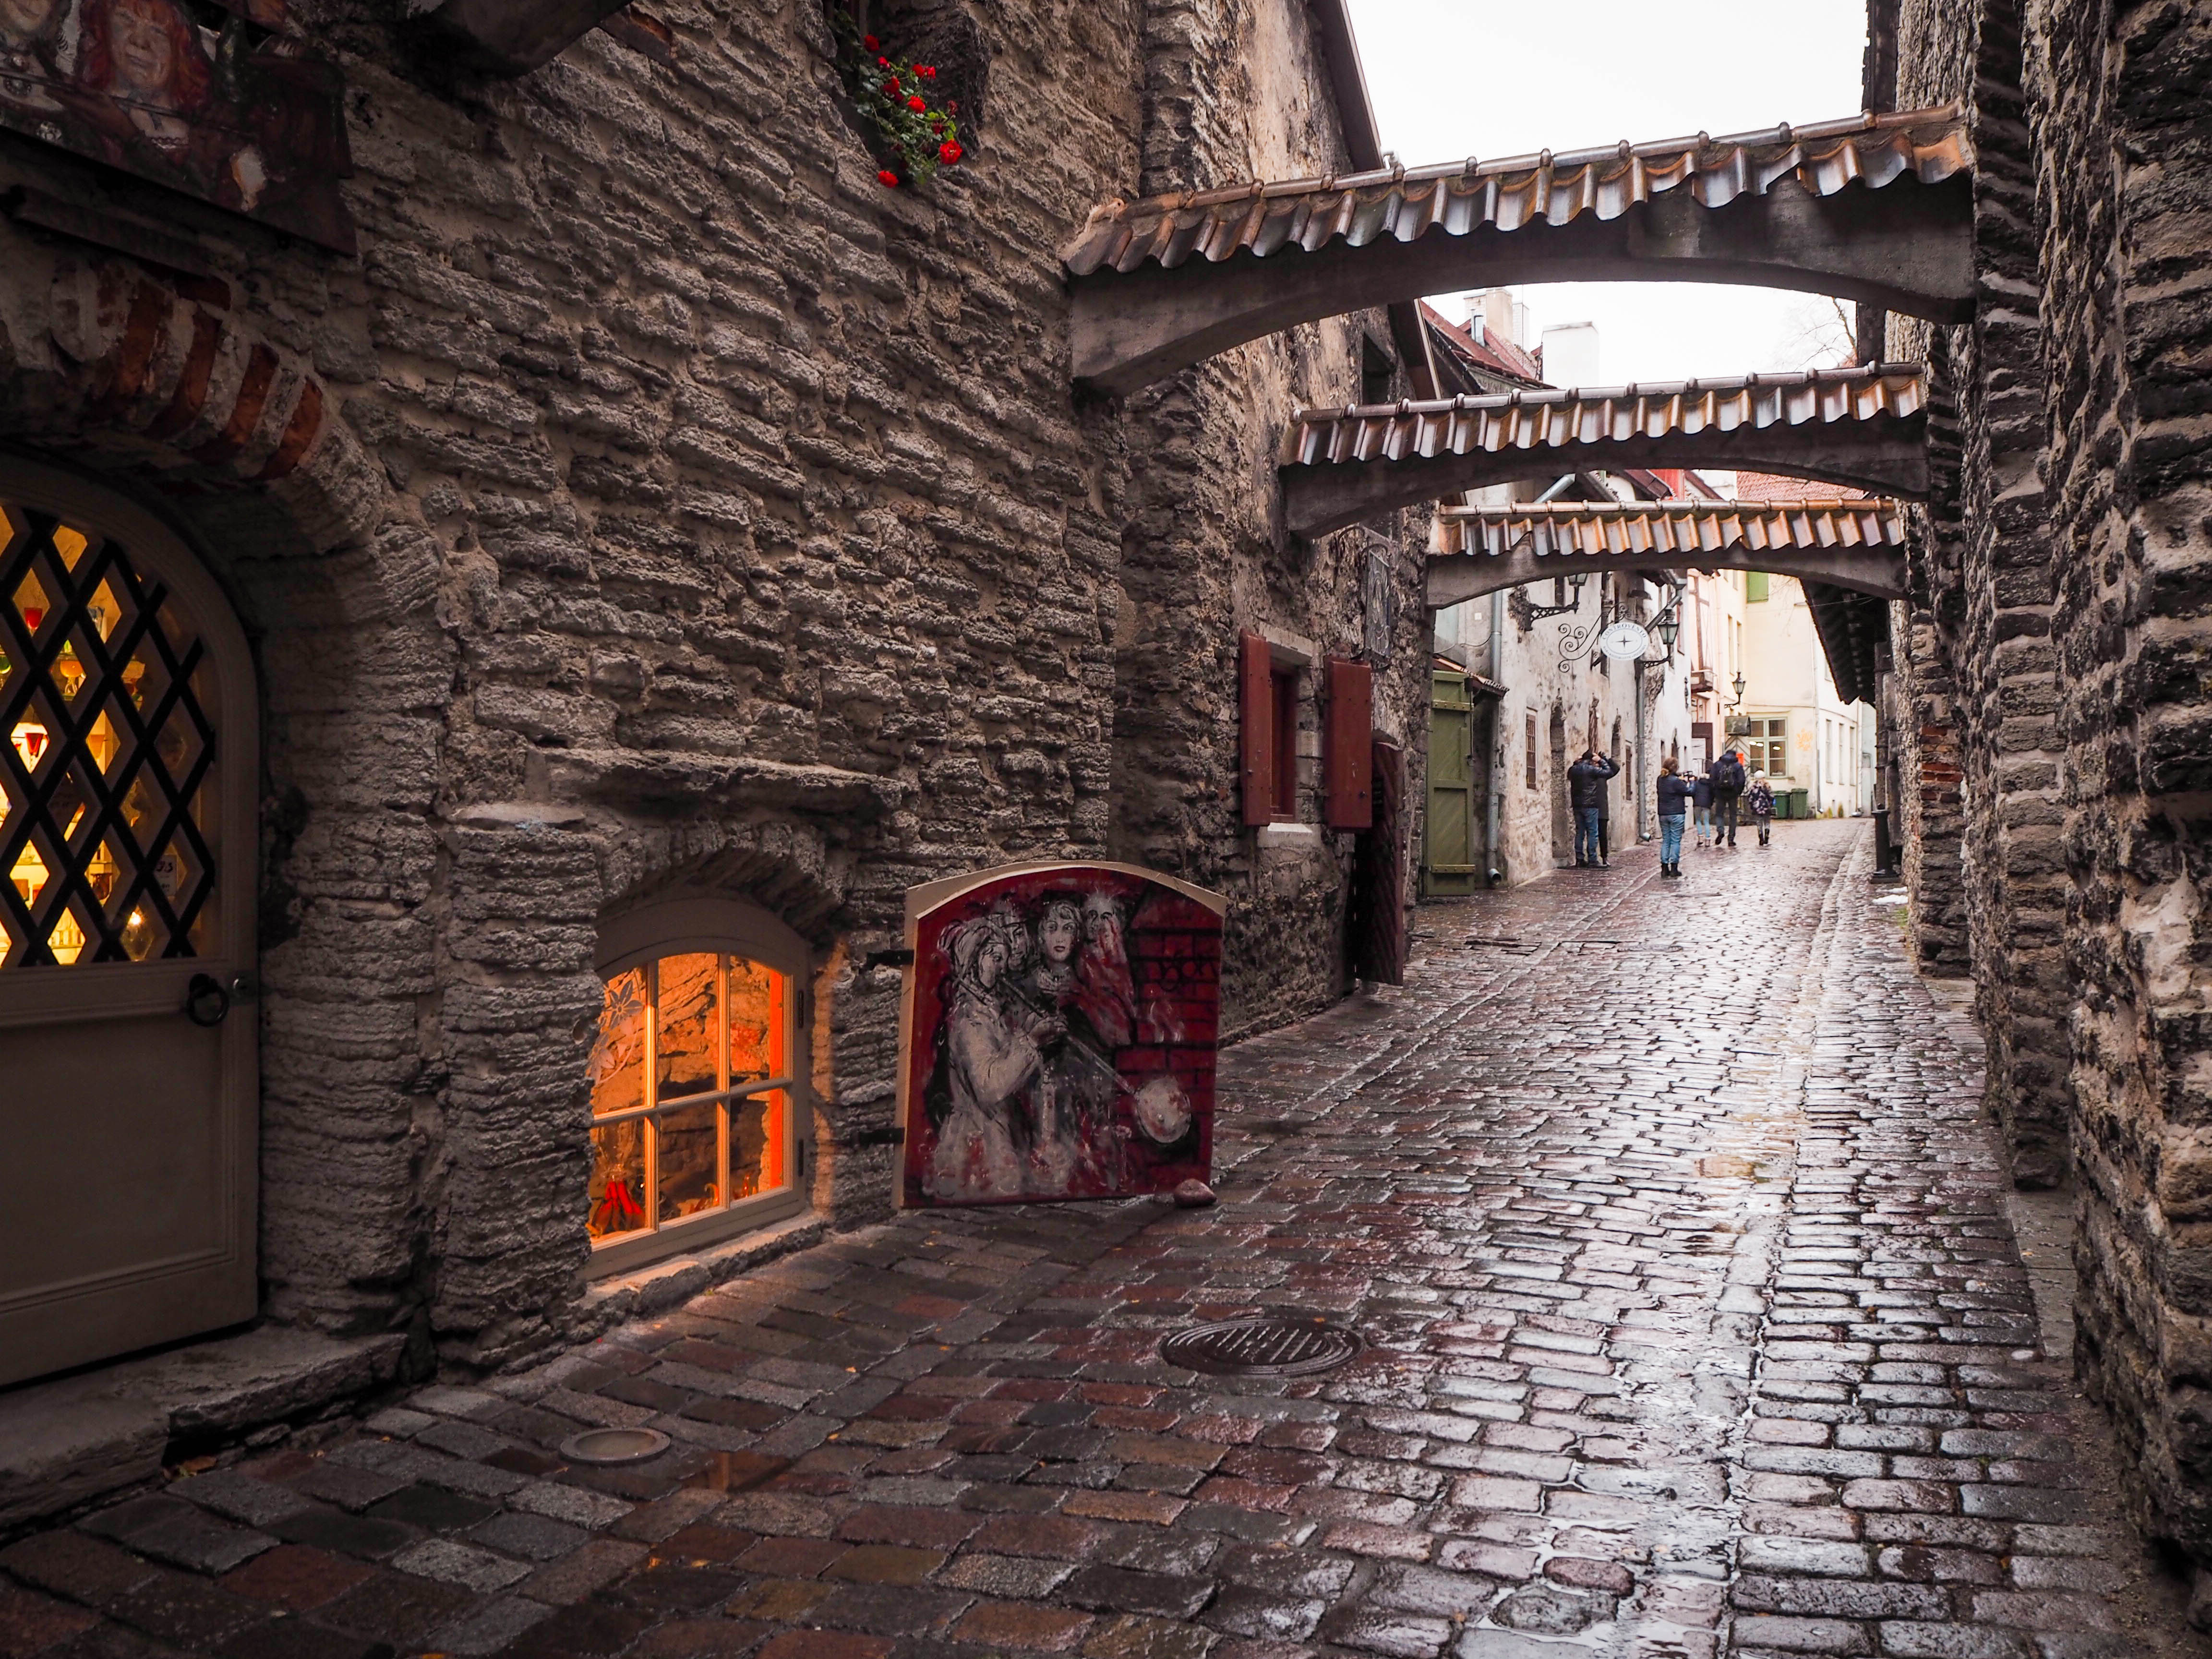 St. Catherine's Passage, Tallinn, Estonia